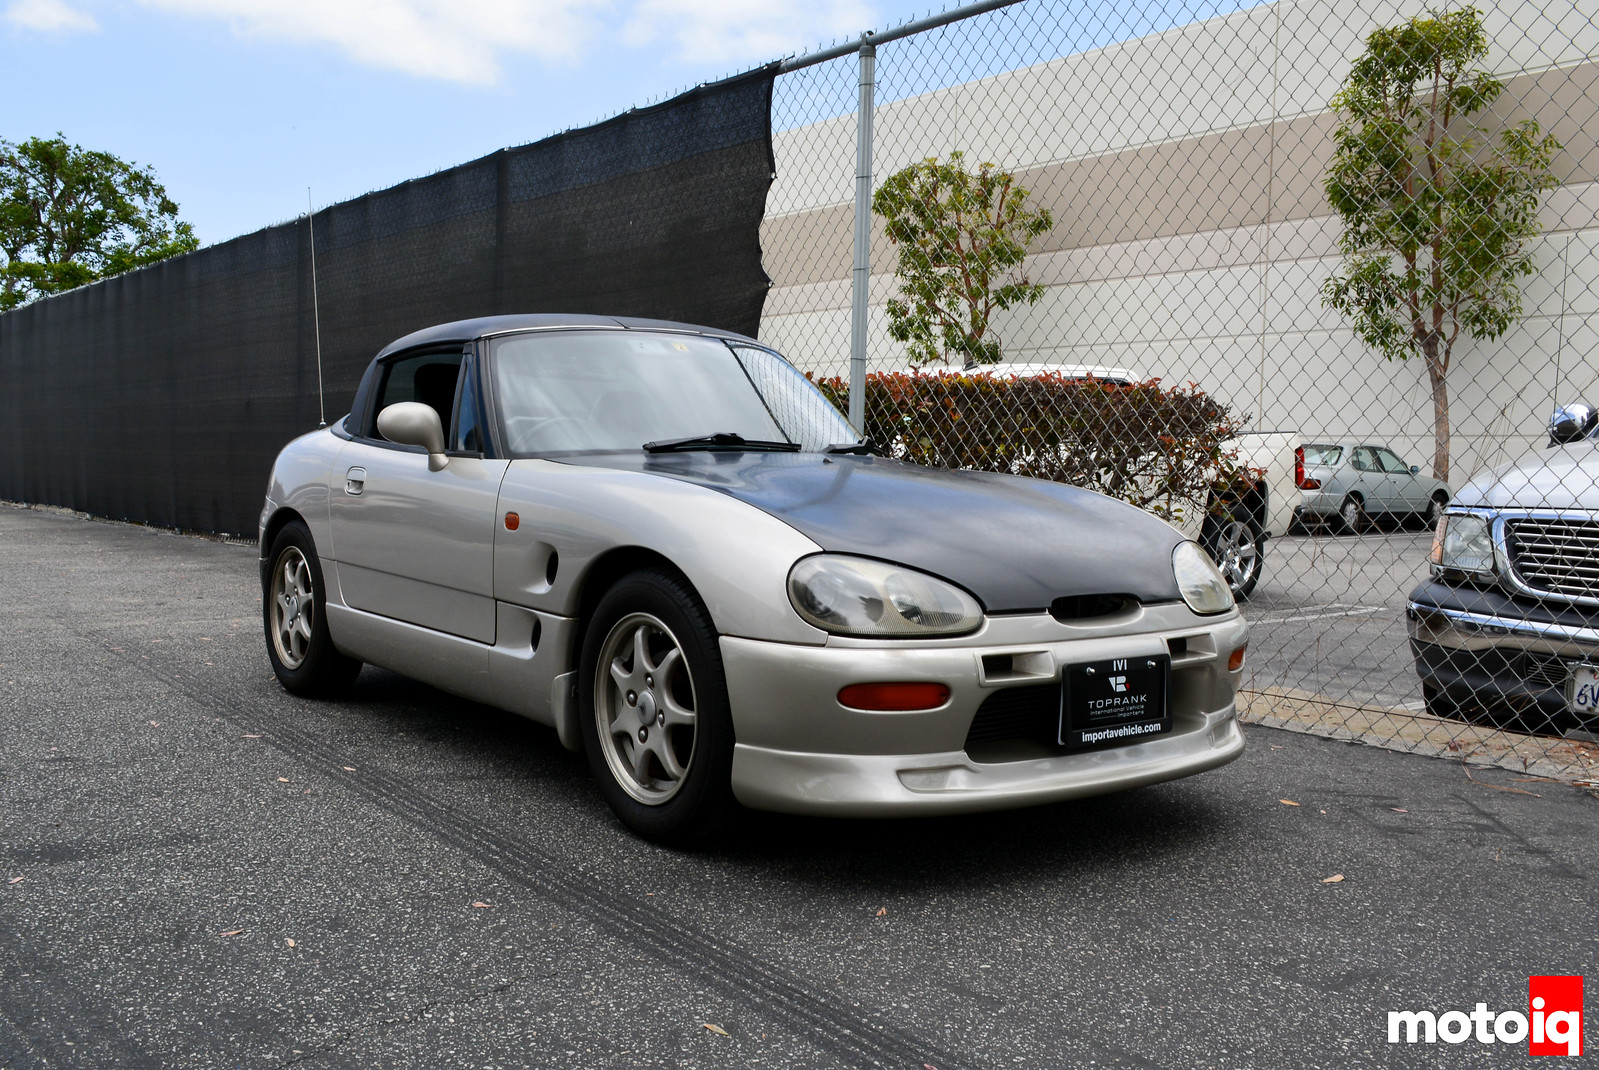 Suzuki Cappuccino First Look